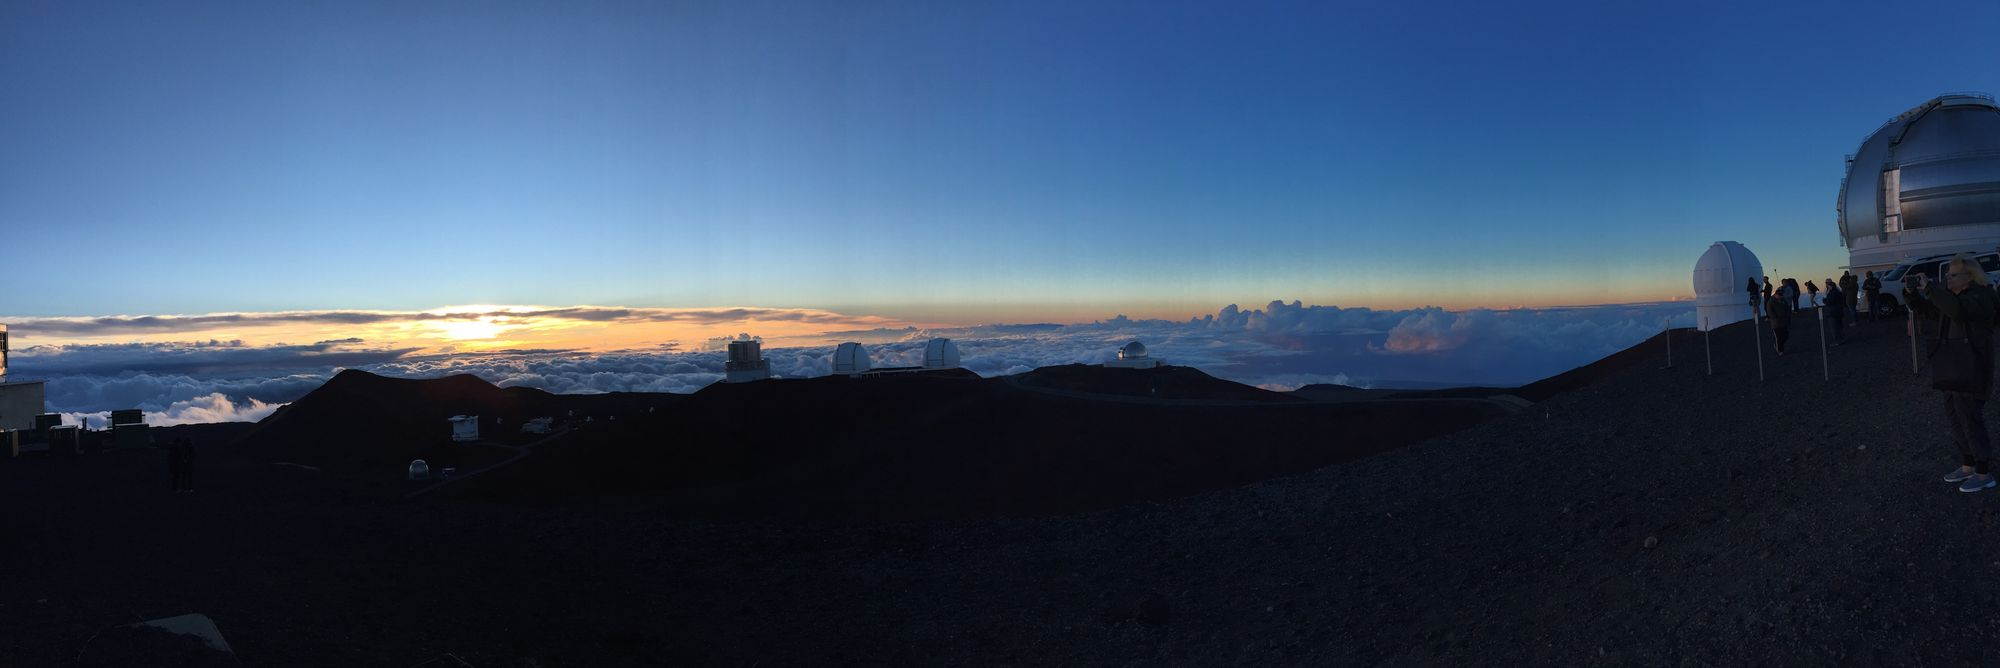 Travel to Paradise - Mauna Kea